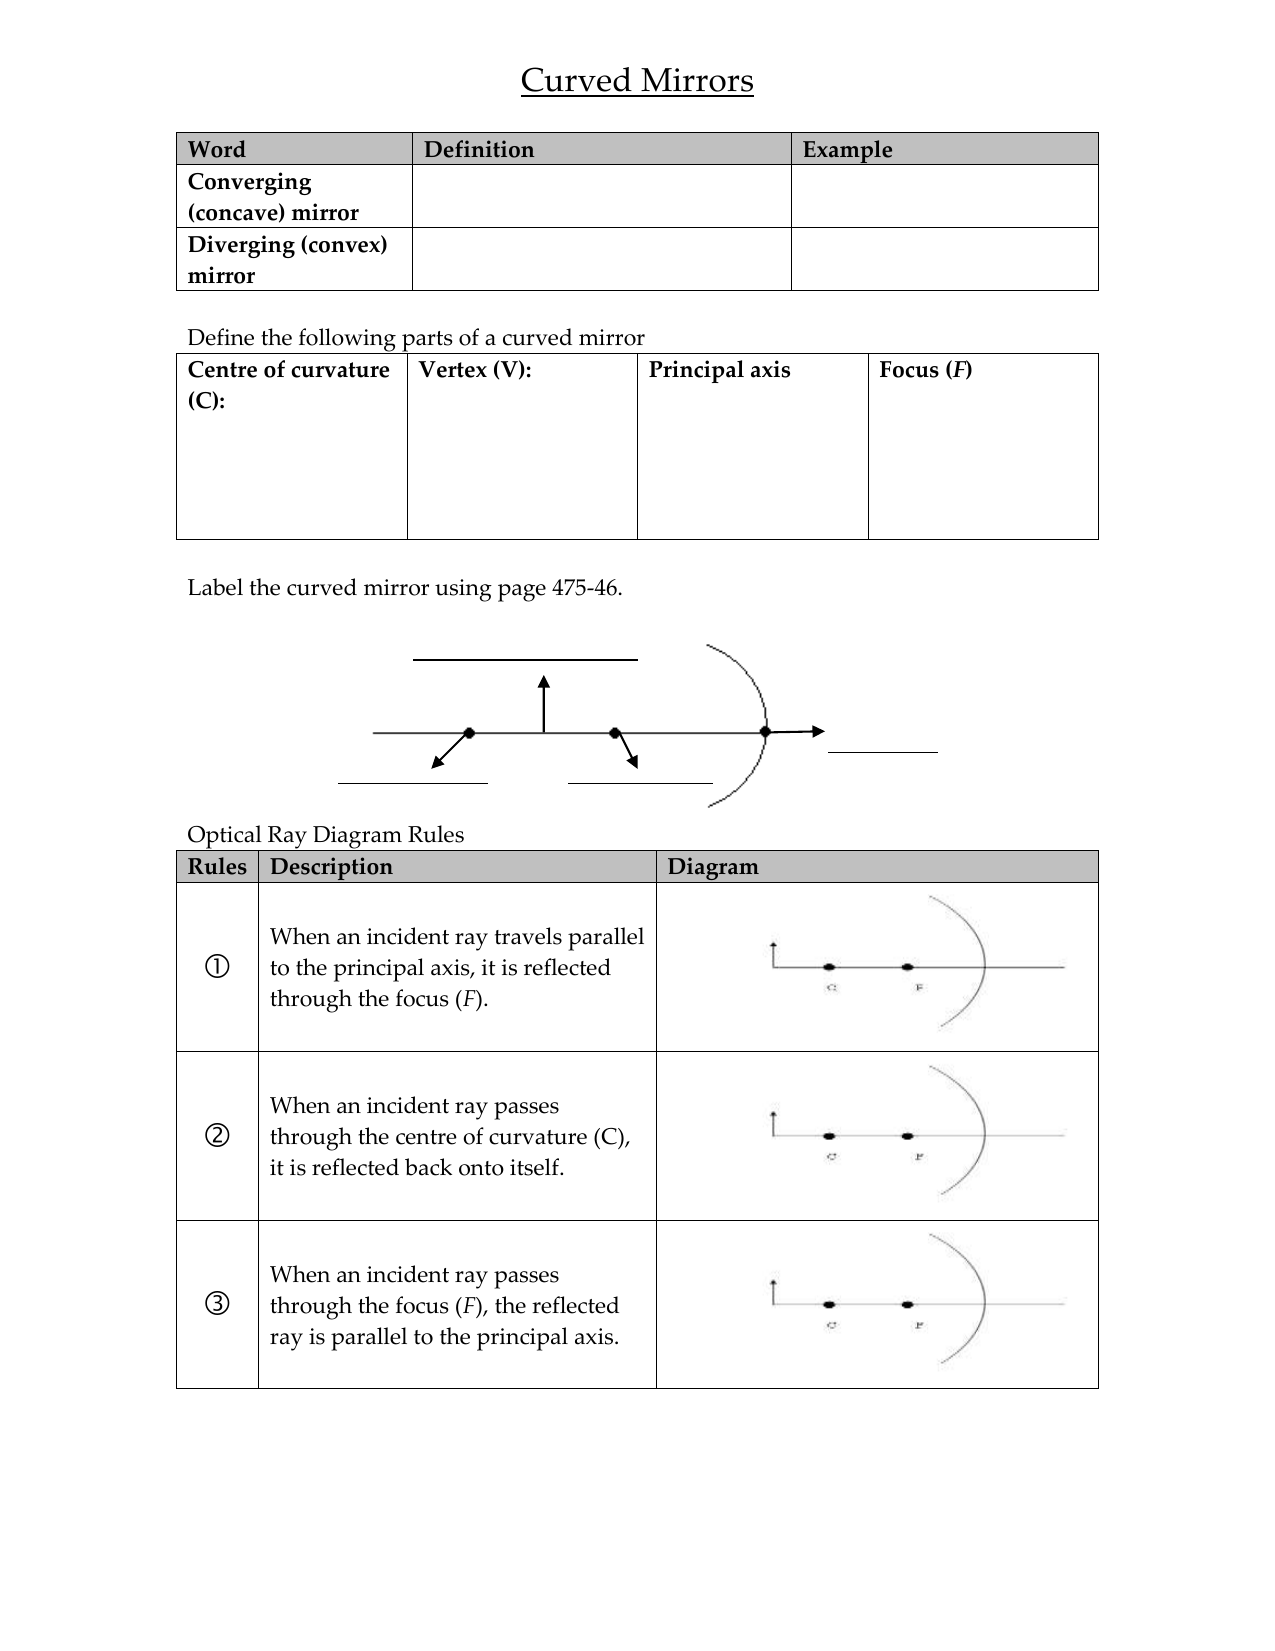 Curved Mirrors Worksheet